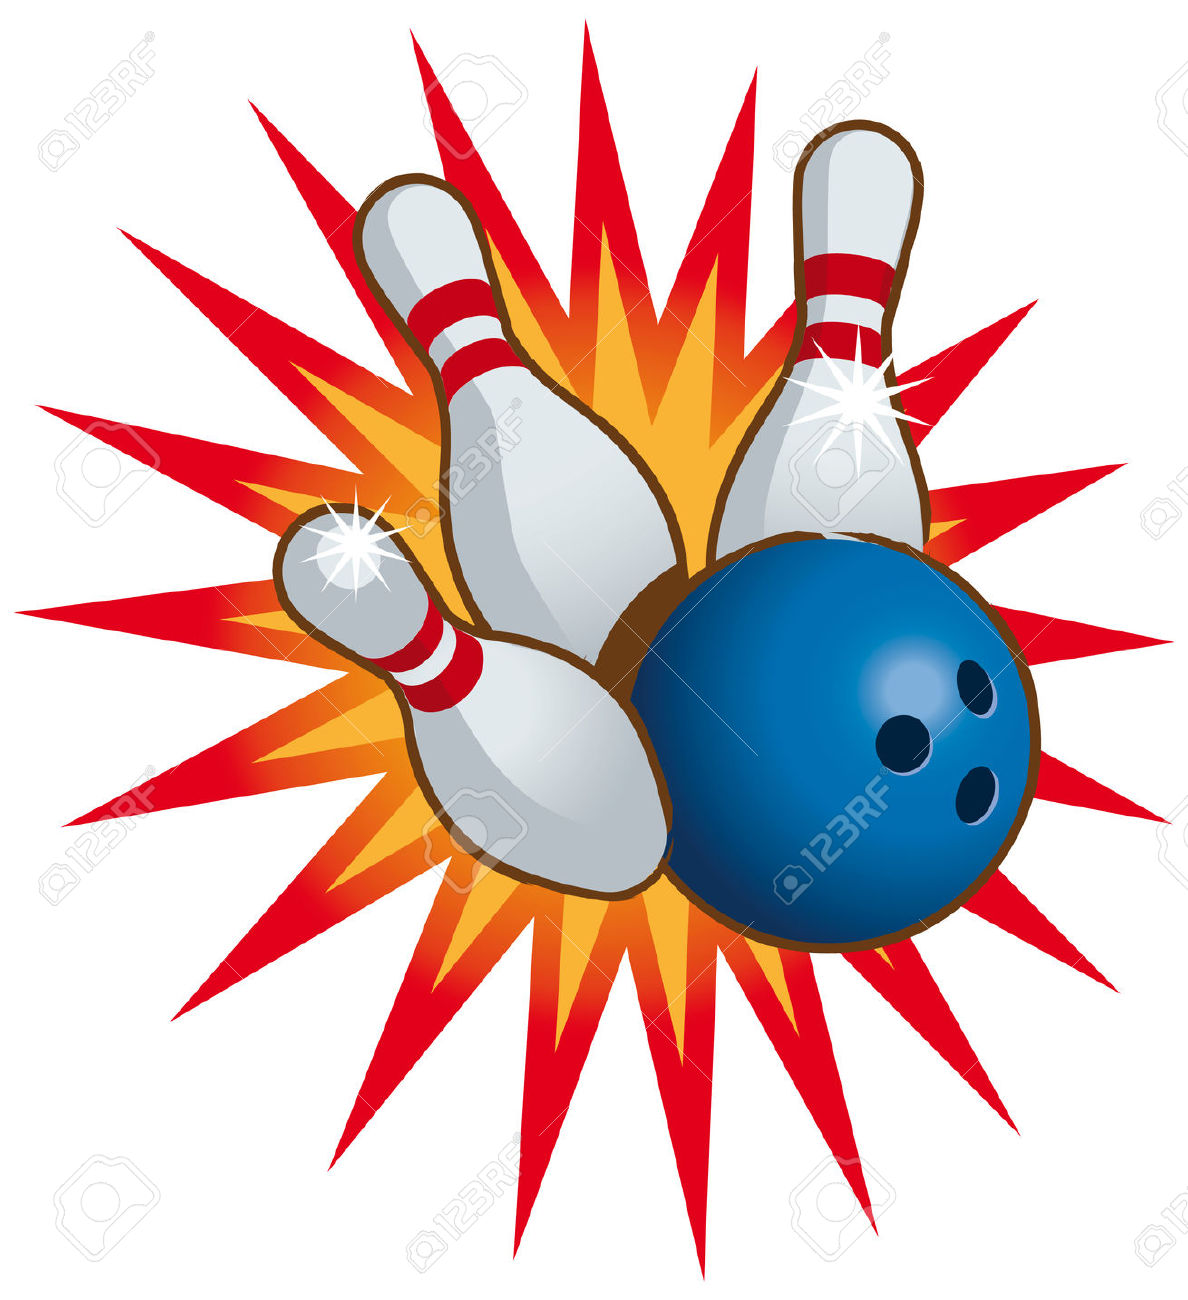 Clip Art. Bowling Clipart. Stonetire Free Clip Art Images.